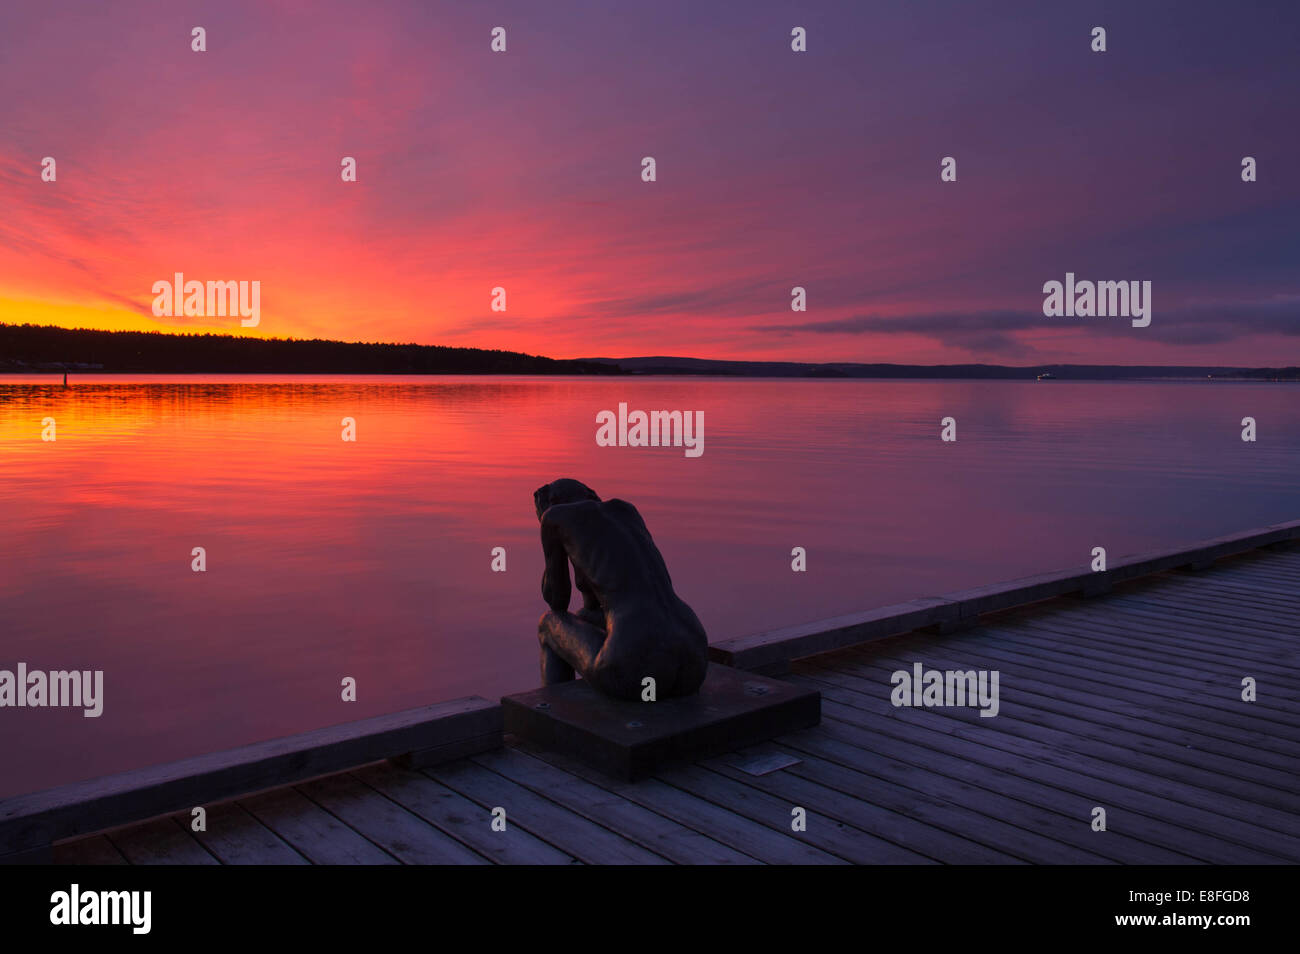 Statue overlooking fjord at sunset - Stock Image